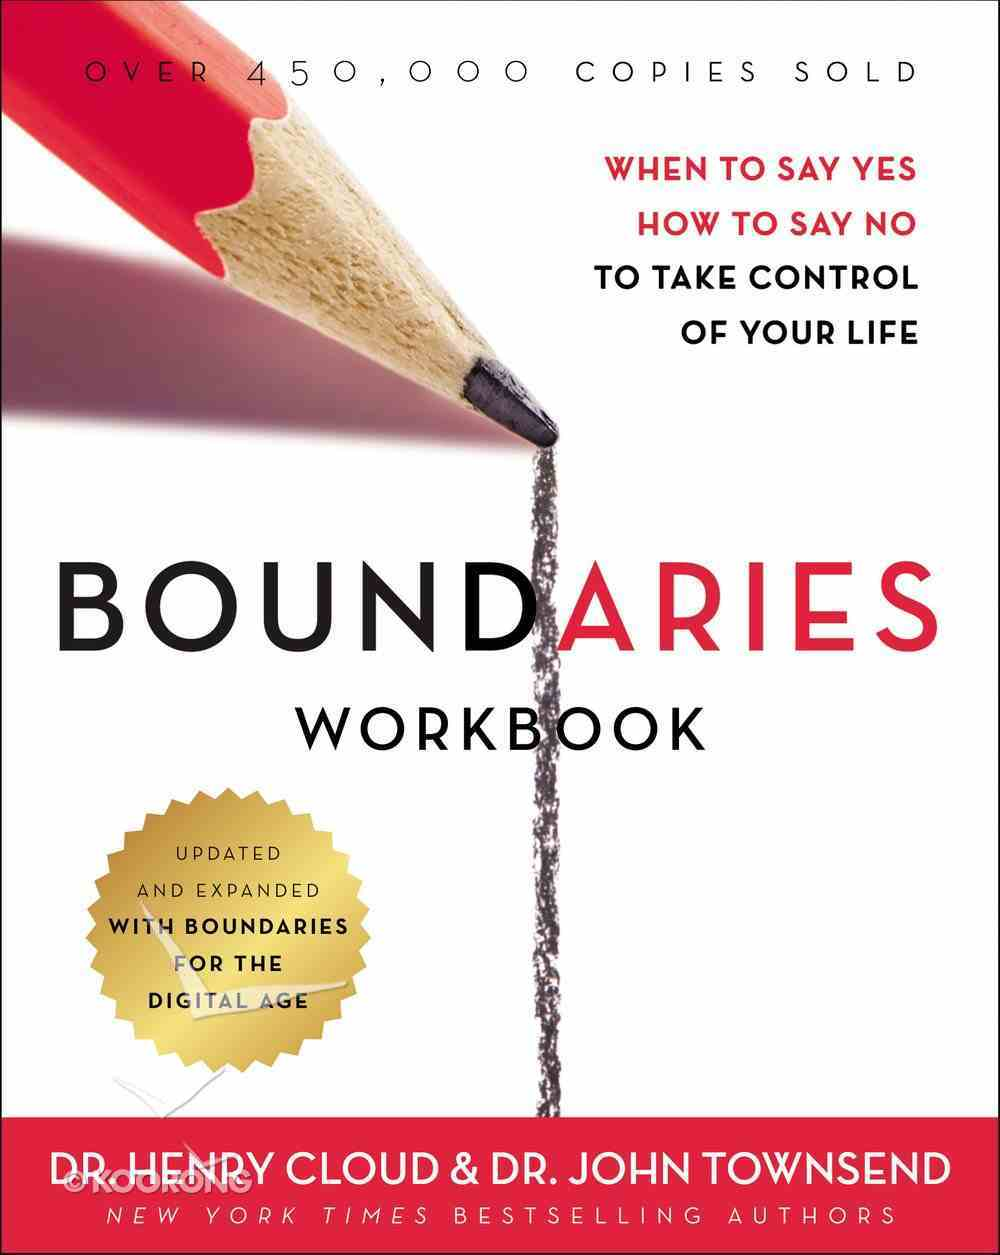 Boundaries: A Companion to the Book (Workbook) Paperback